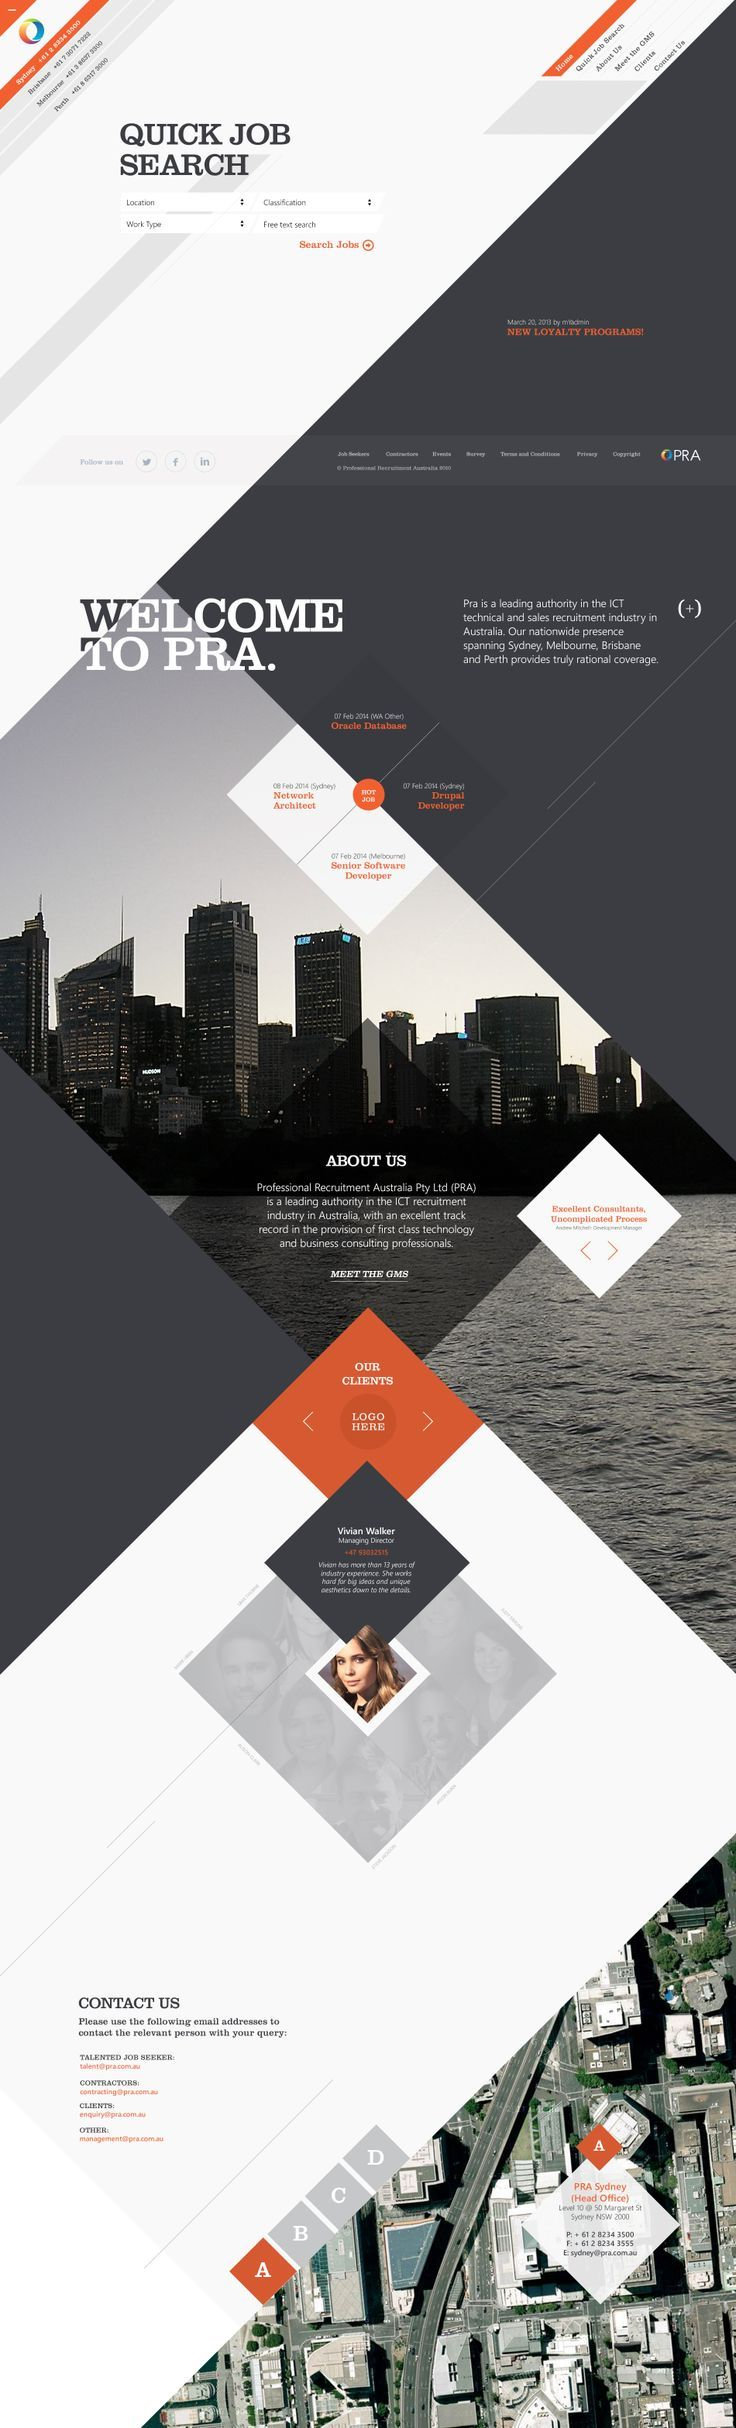 20+ Best Website Designs for Inspiration! Creative Stuff